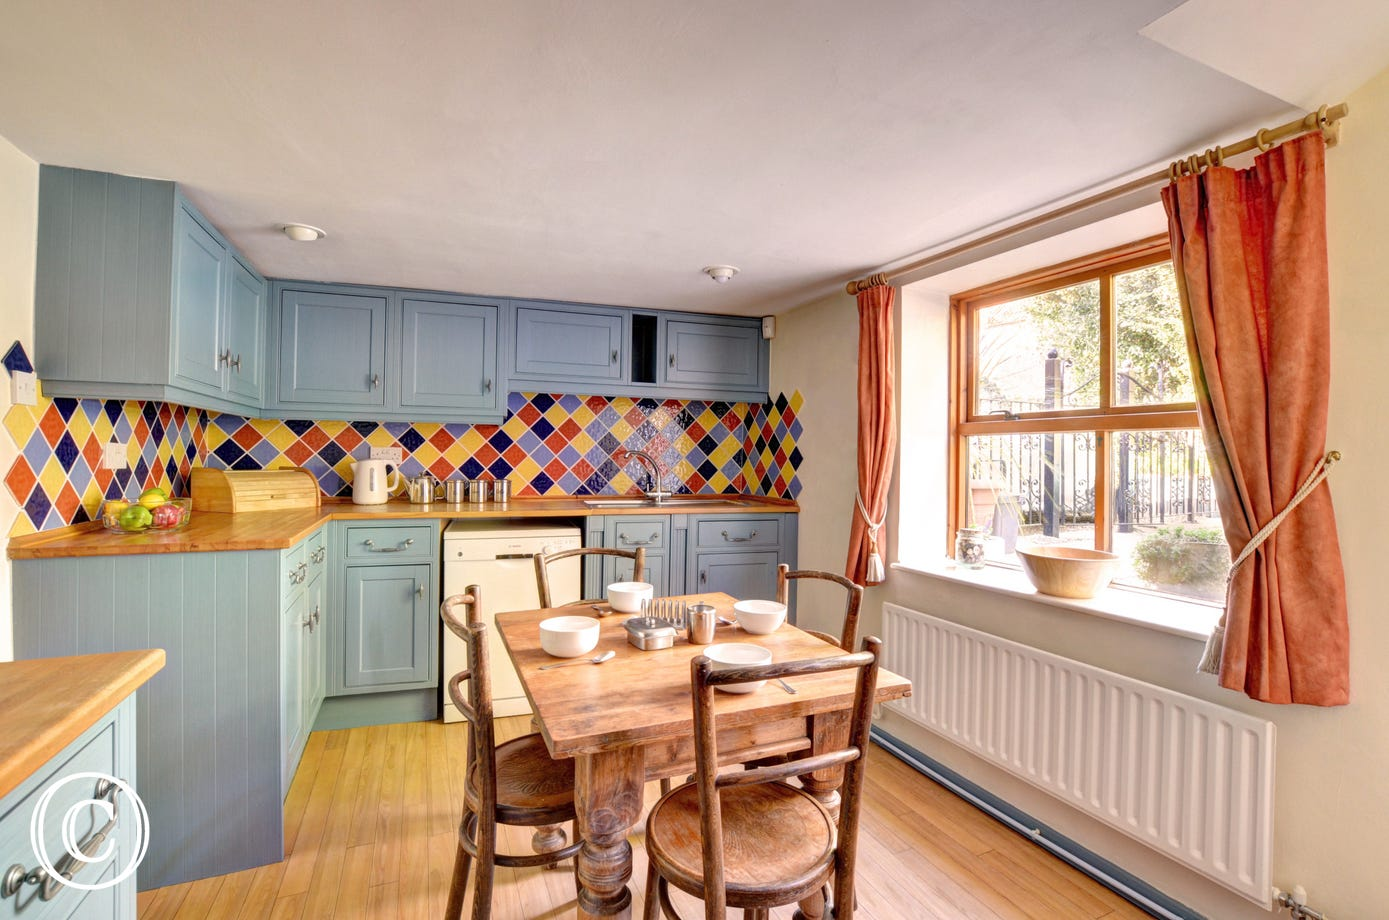 Colourful kitchen with table and four chairs